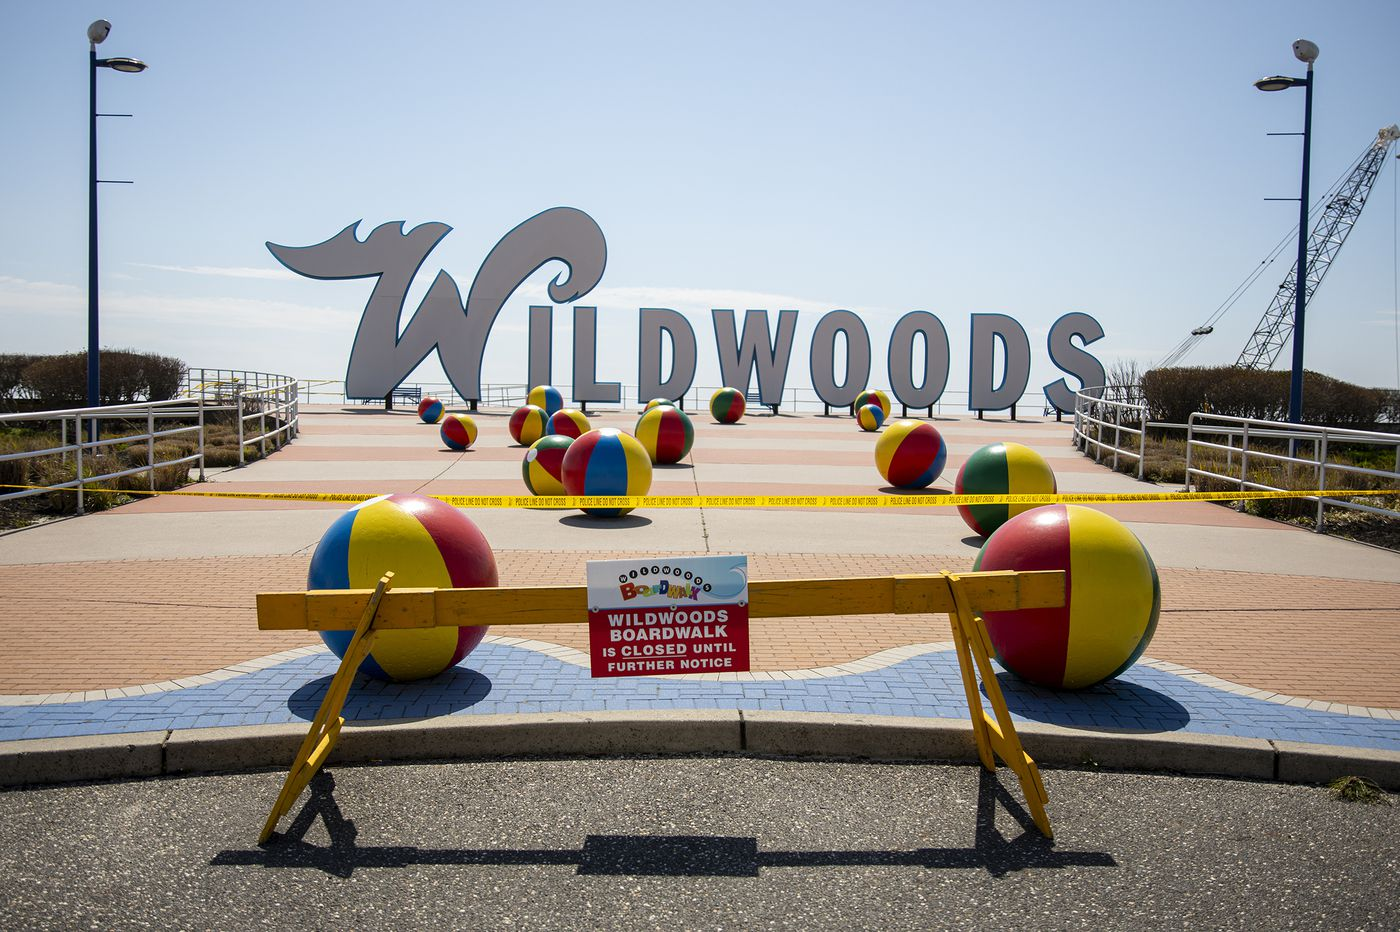 Two of the Wildwoods will reopen beaches, boardwalk, and parks on Friday